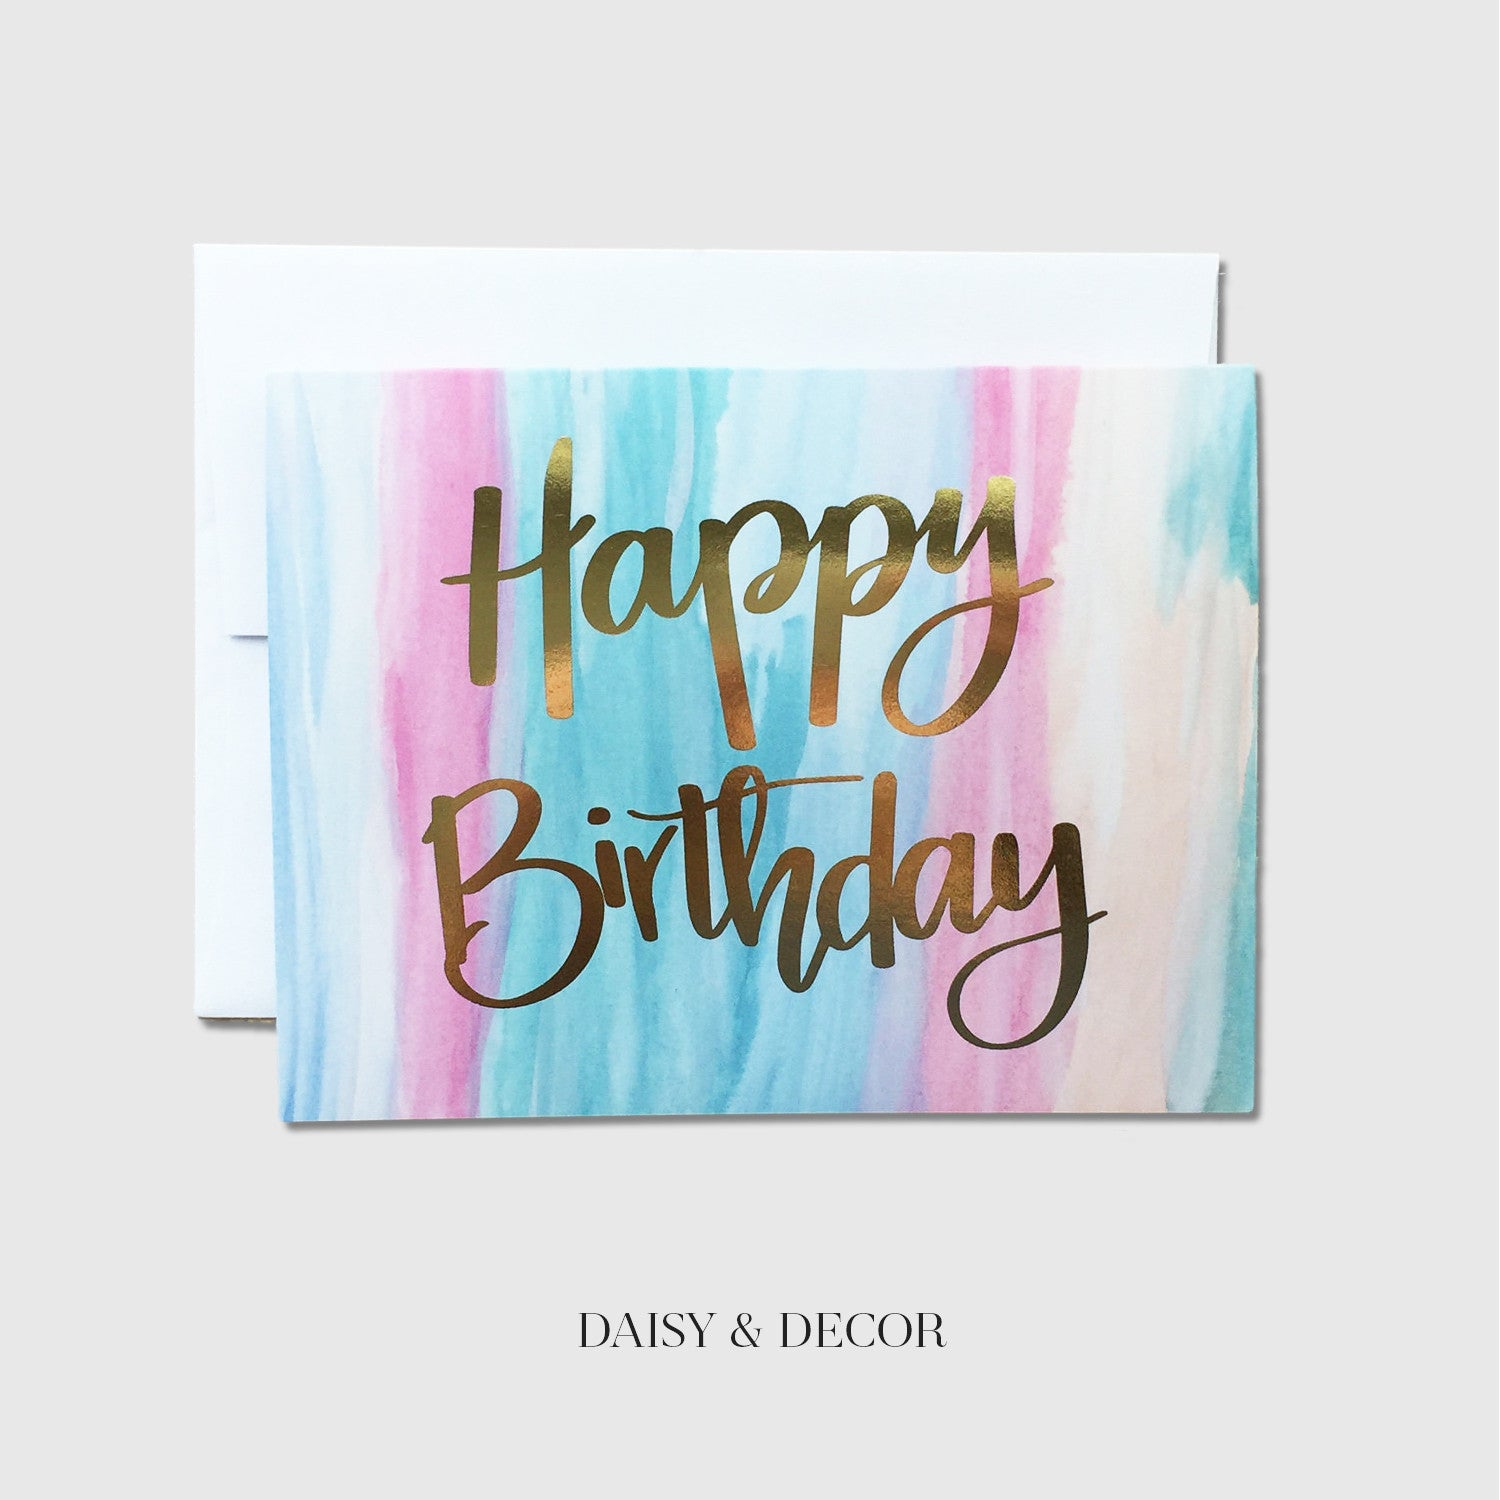 Happy birthday watercolor greeting card daisy and decor happy birthday watercolor greeting card m4hsunfo